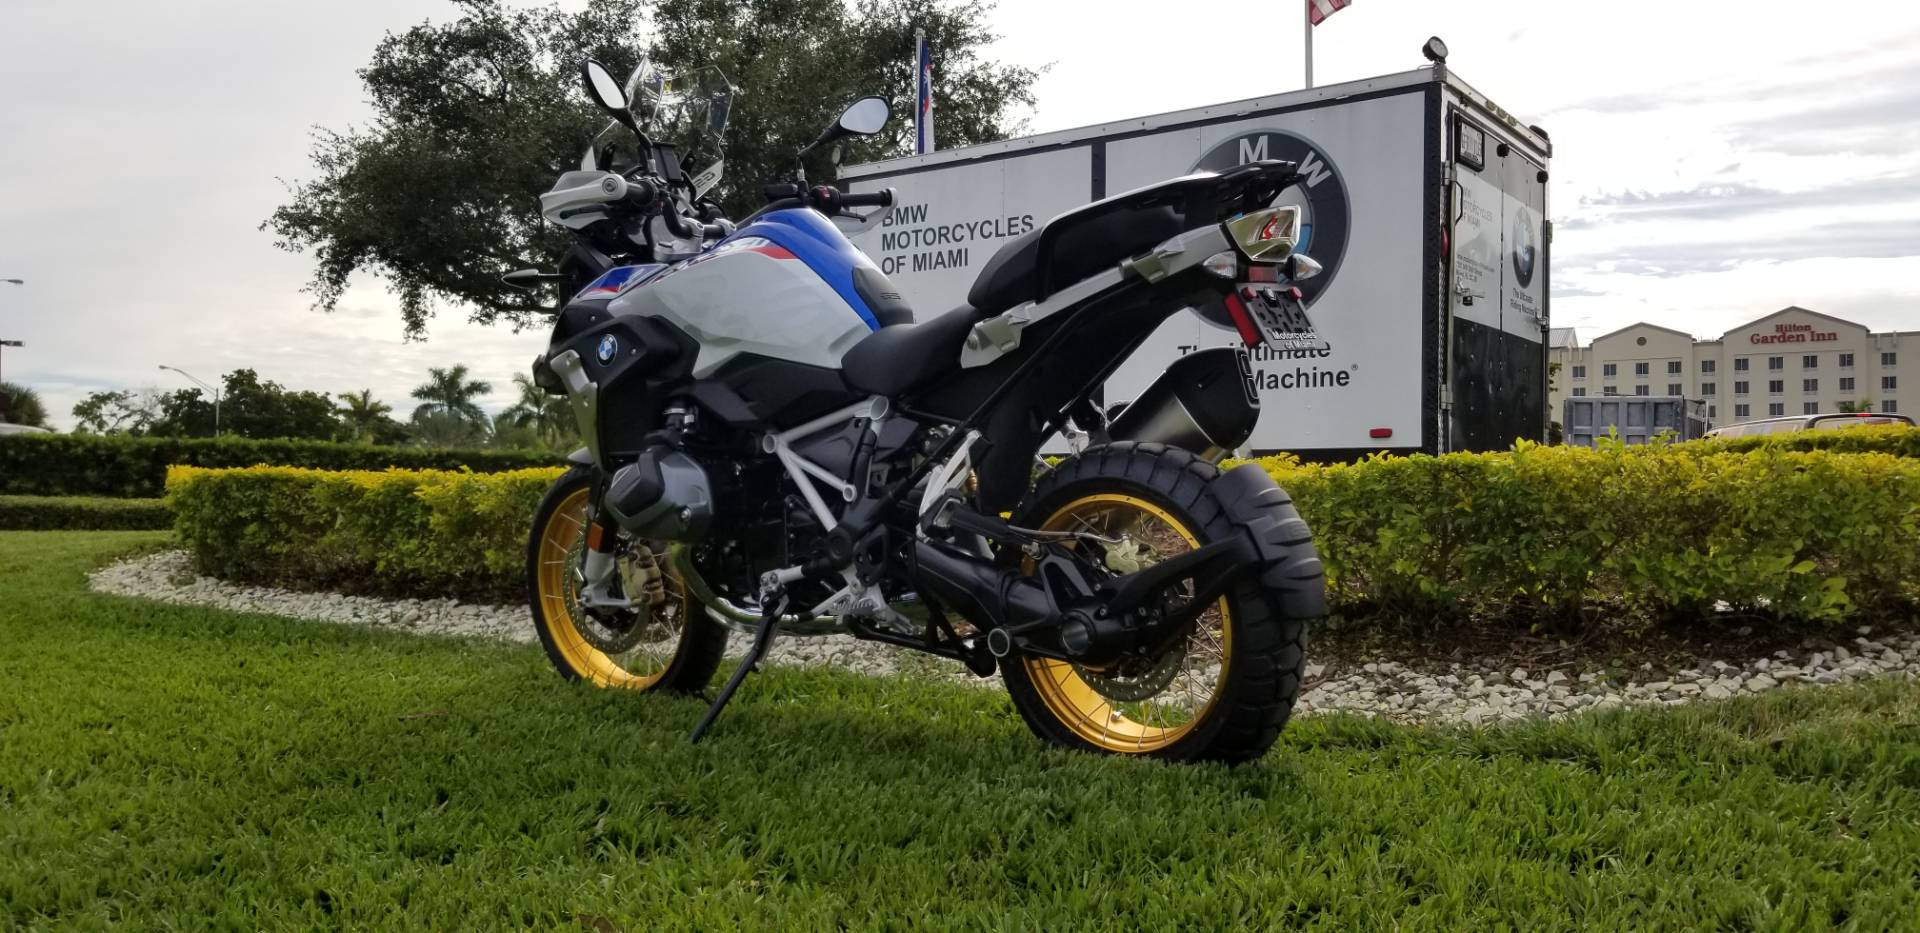 New 2019 BMW R 1250 GS for sale, New BMW for sale R 1250GS, New BMW Motorcycle R1250GS for sale, new BMW 1250GS, R1250GS, GS. BMW Motorcycles of Miami, Motorcycles of Miami, Motorcycles Miami, New Motorcycles, Used Motorcycles, pre-owned. #BMWMotorcyclesOfMiami #MotorcyclesOfMiami. - Photo 11